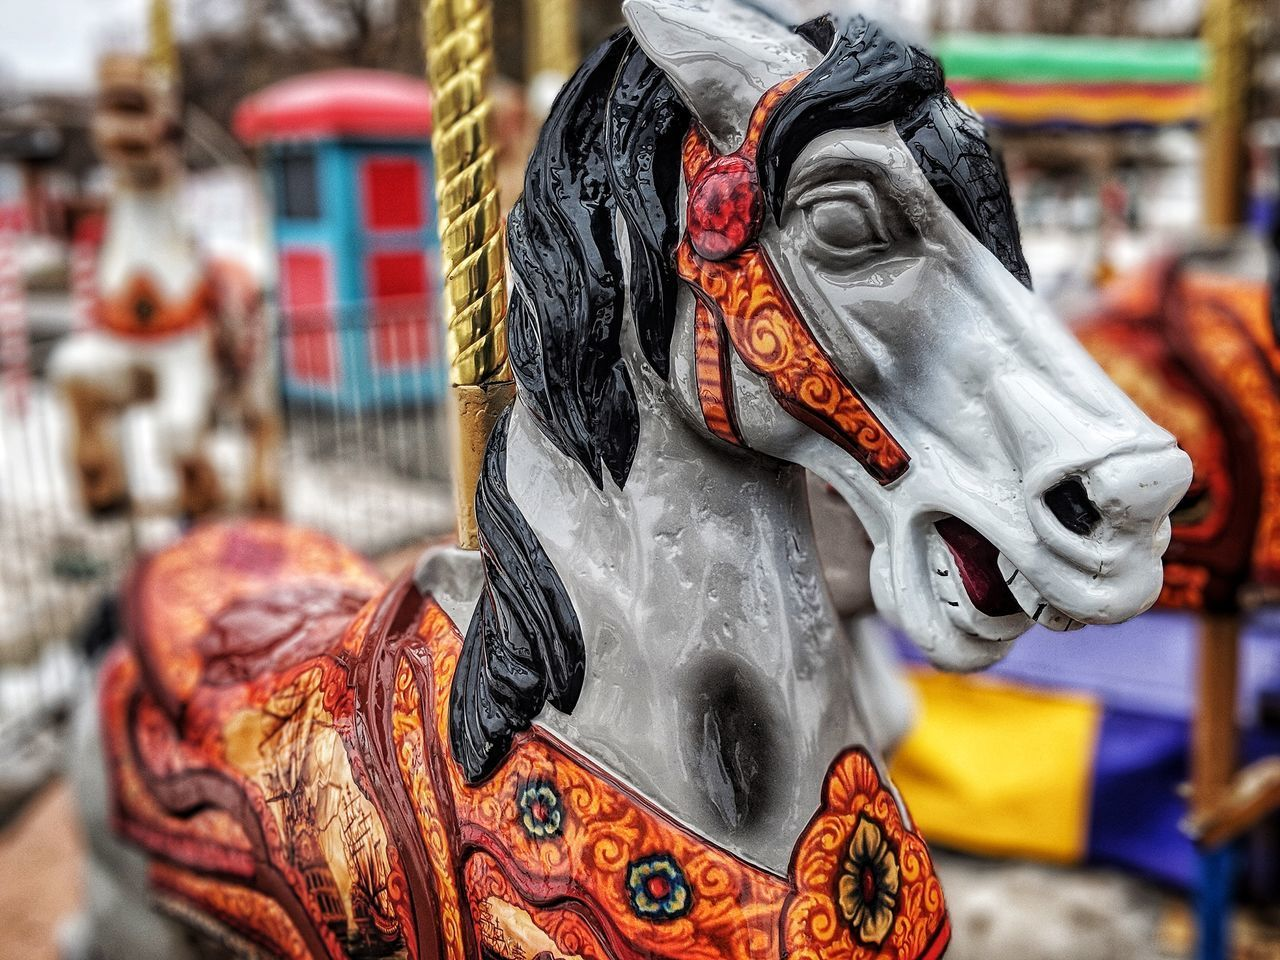 CLOSE-UP OF ANIMAL SCULPTURE ON CAROUSEL IN AMUSEMENT PARK